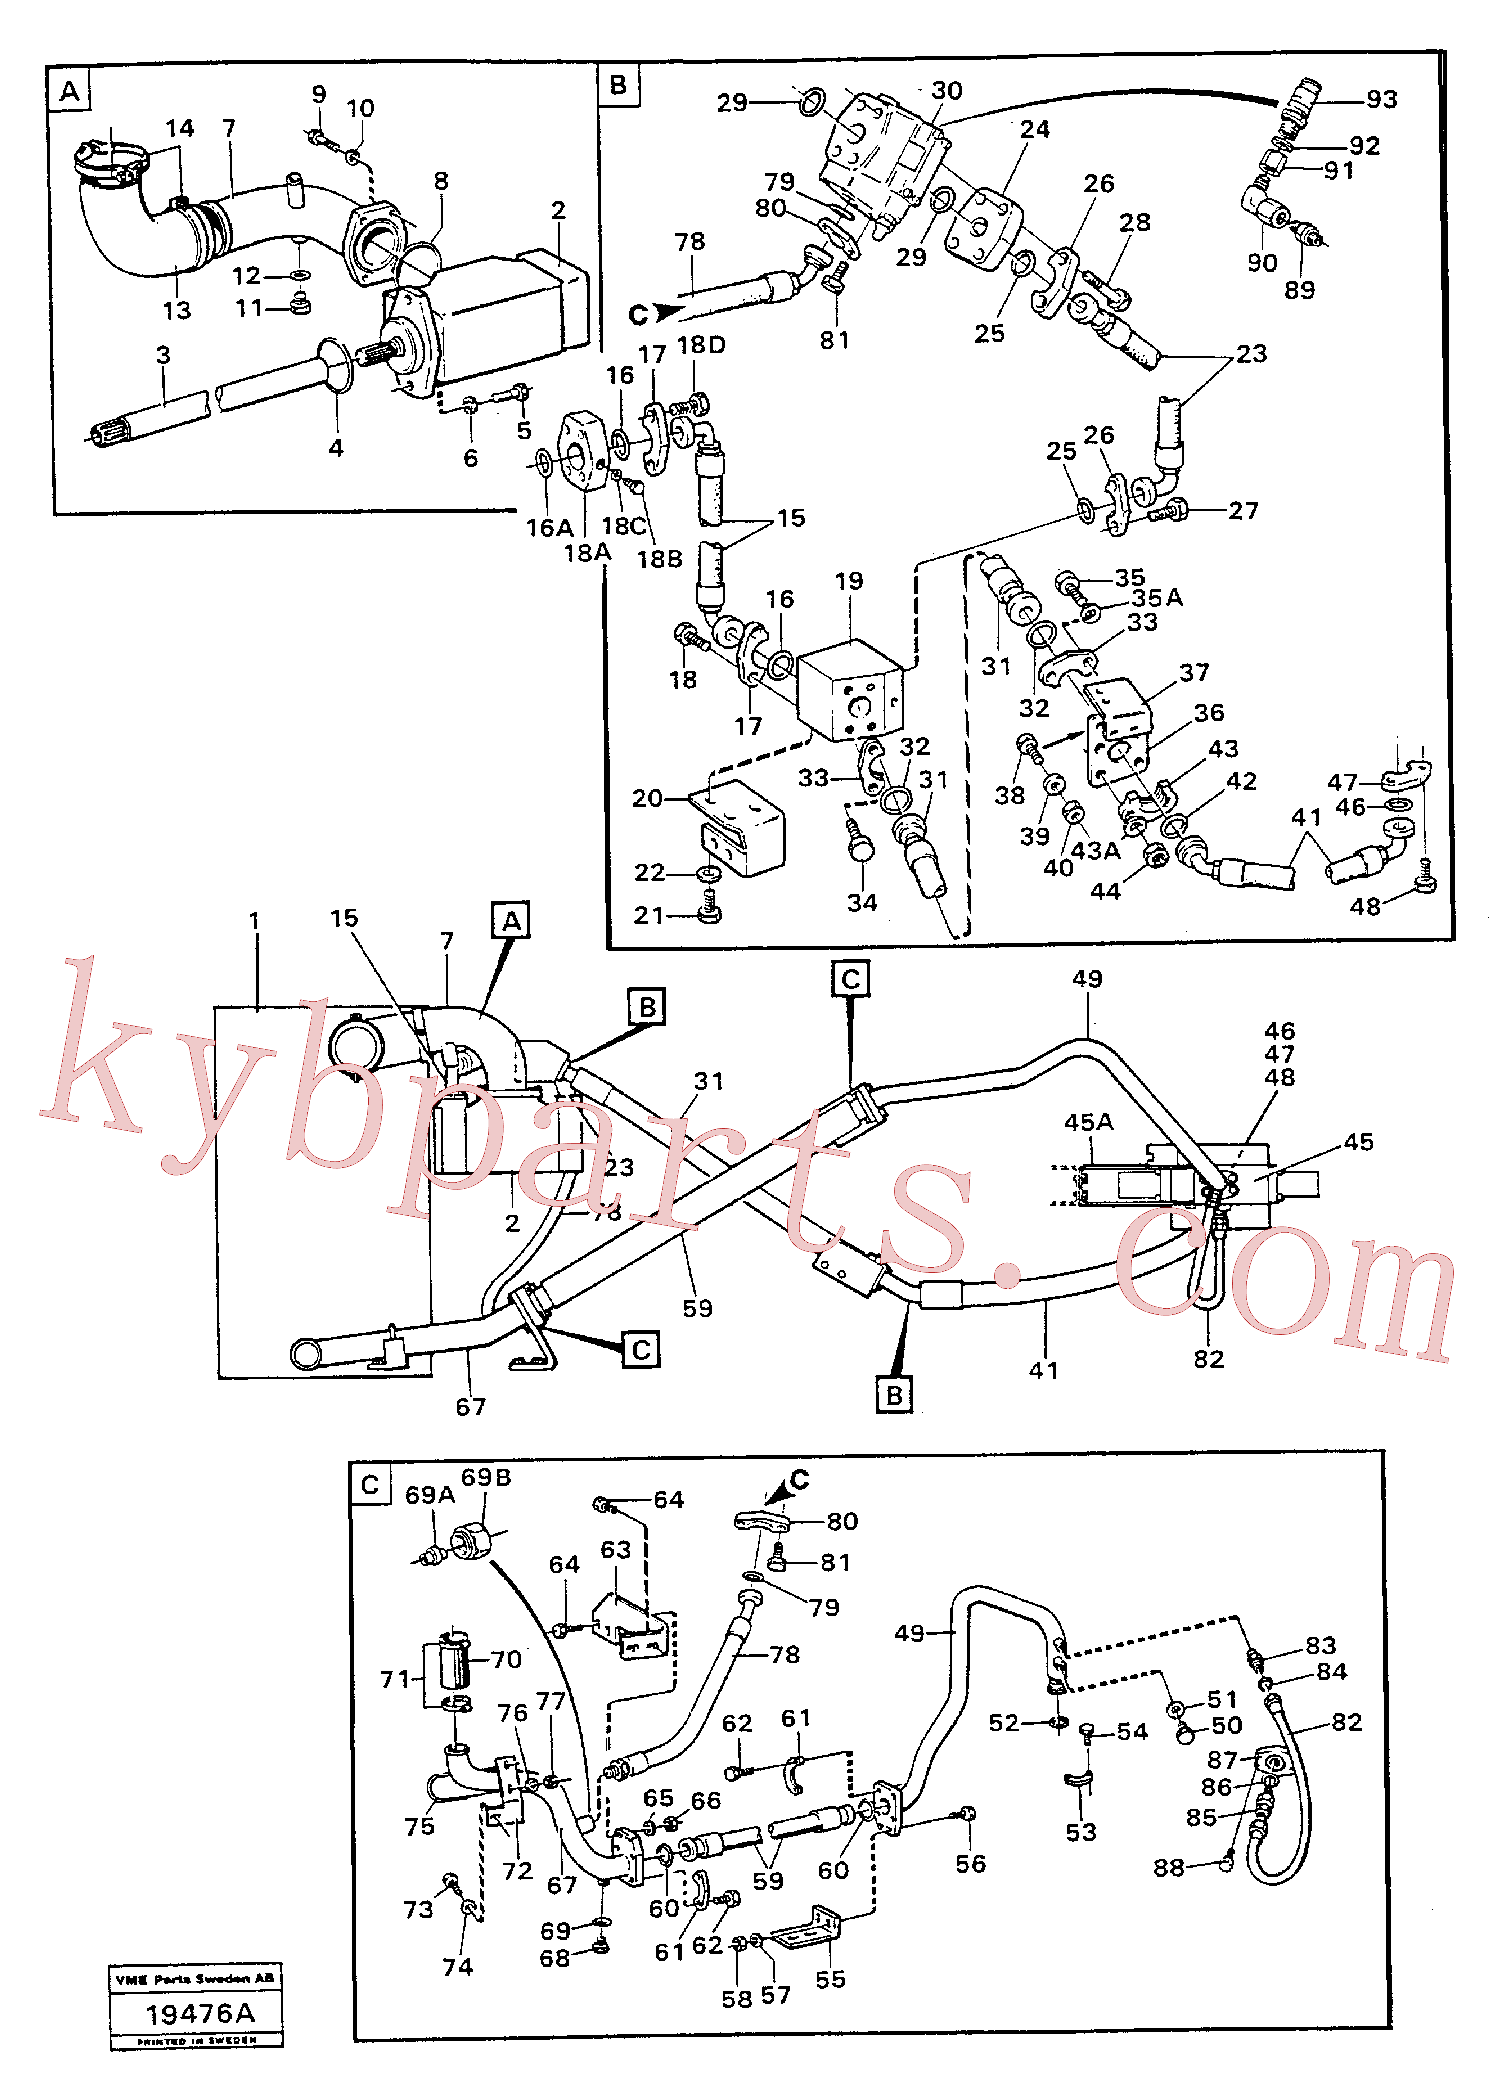 VOE941374 for Volvo Hydraulic system: feed lines.(19476A assembly)